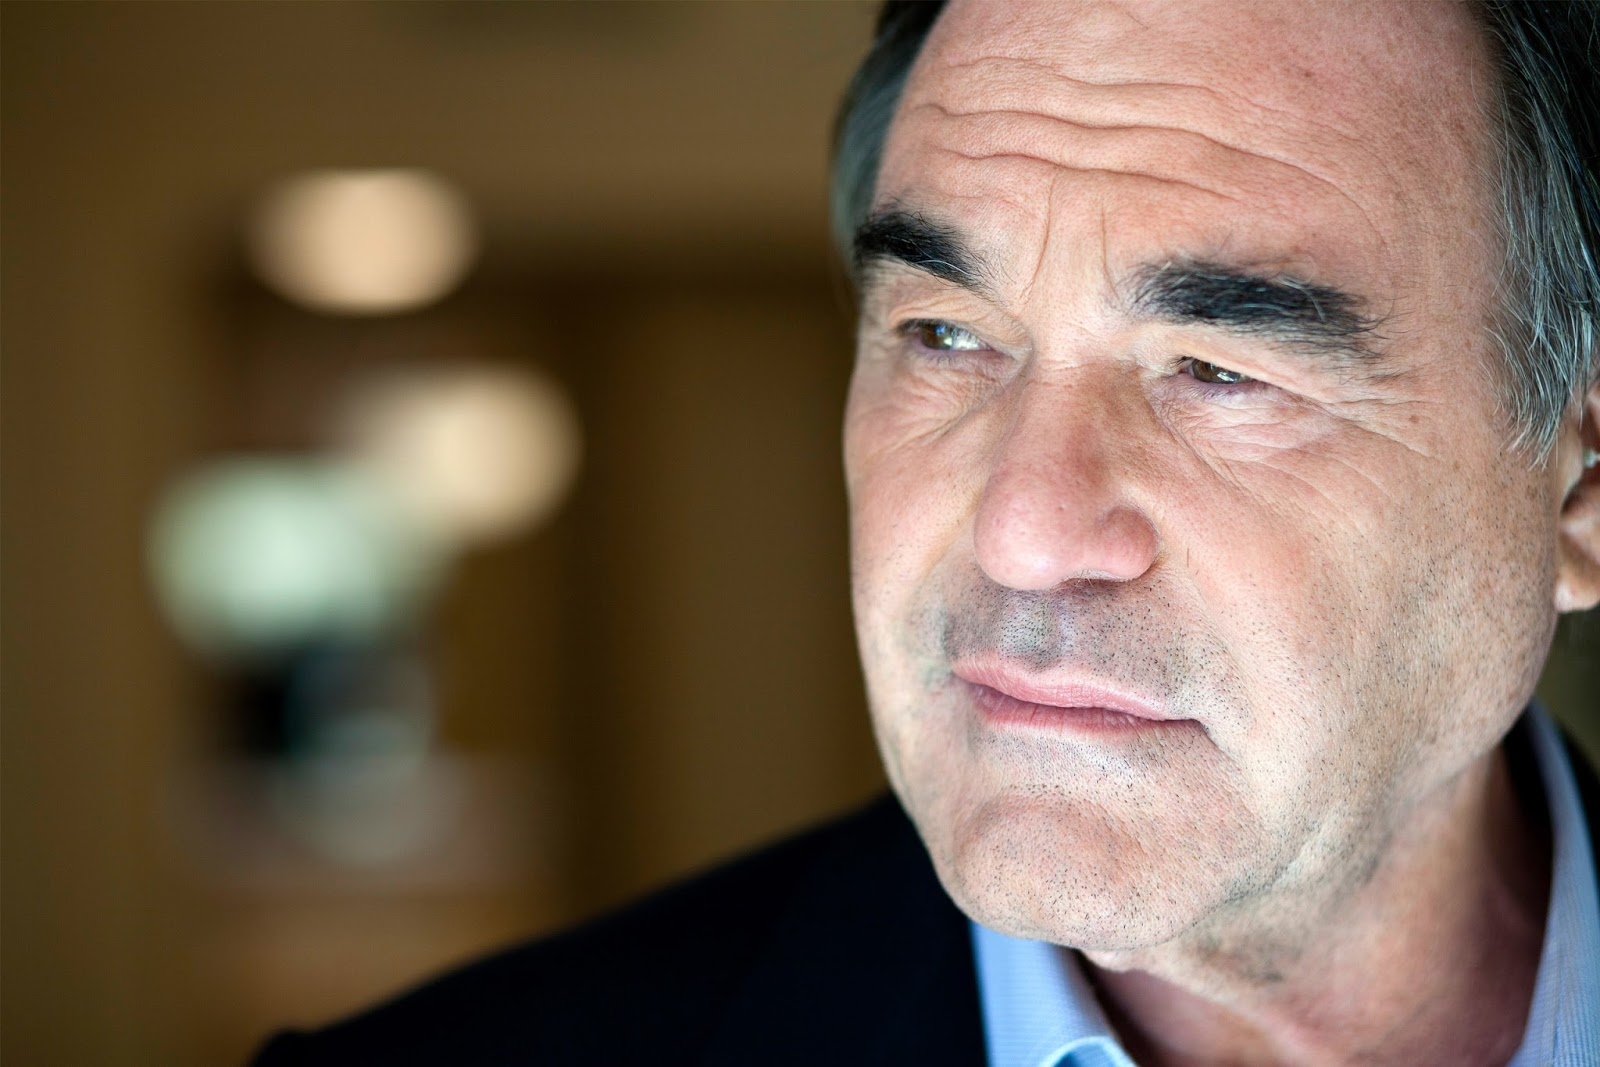 oliver stone jfk essay The best books about the jfk assassination, from norman mailer to don delillo will the release of the latest cache of classified papers oliver stone's film jfk.